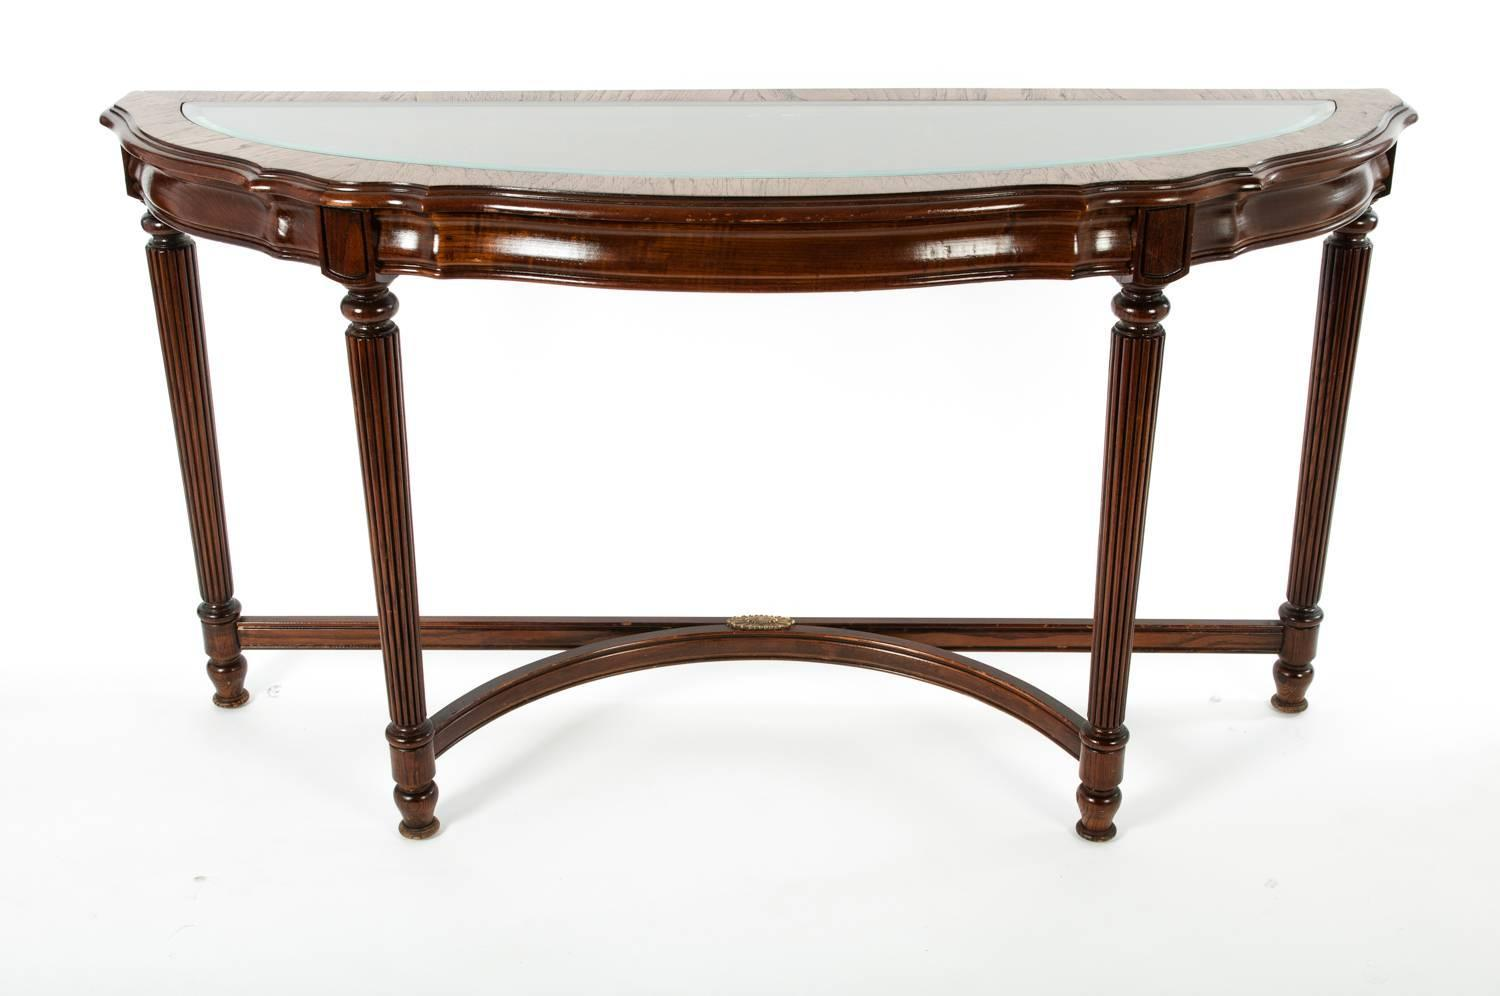 Vintage glass top demilune console table for sale at 1stdibs for 52 glass table top